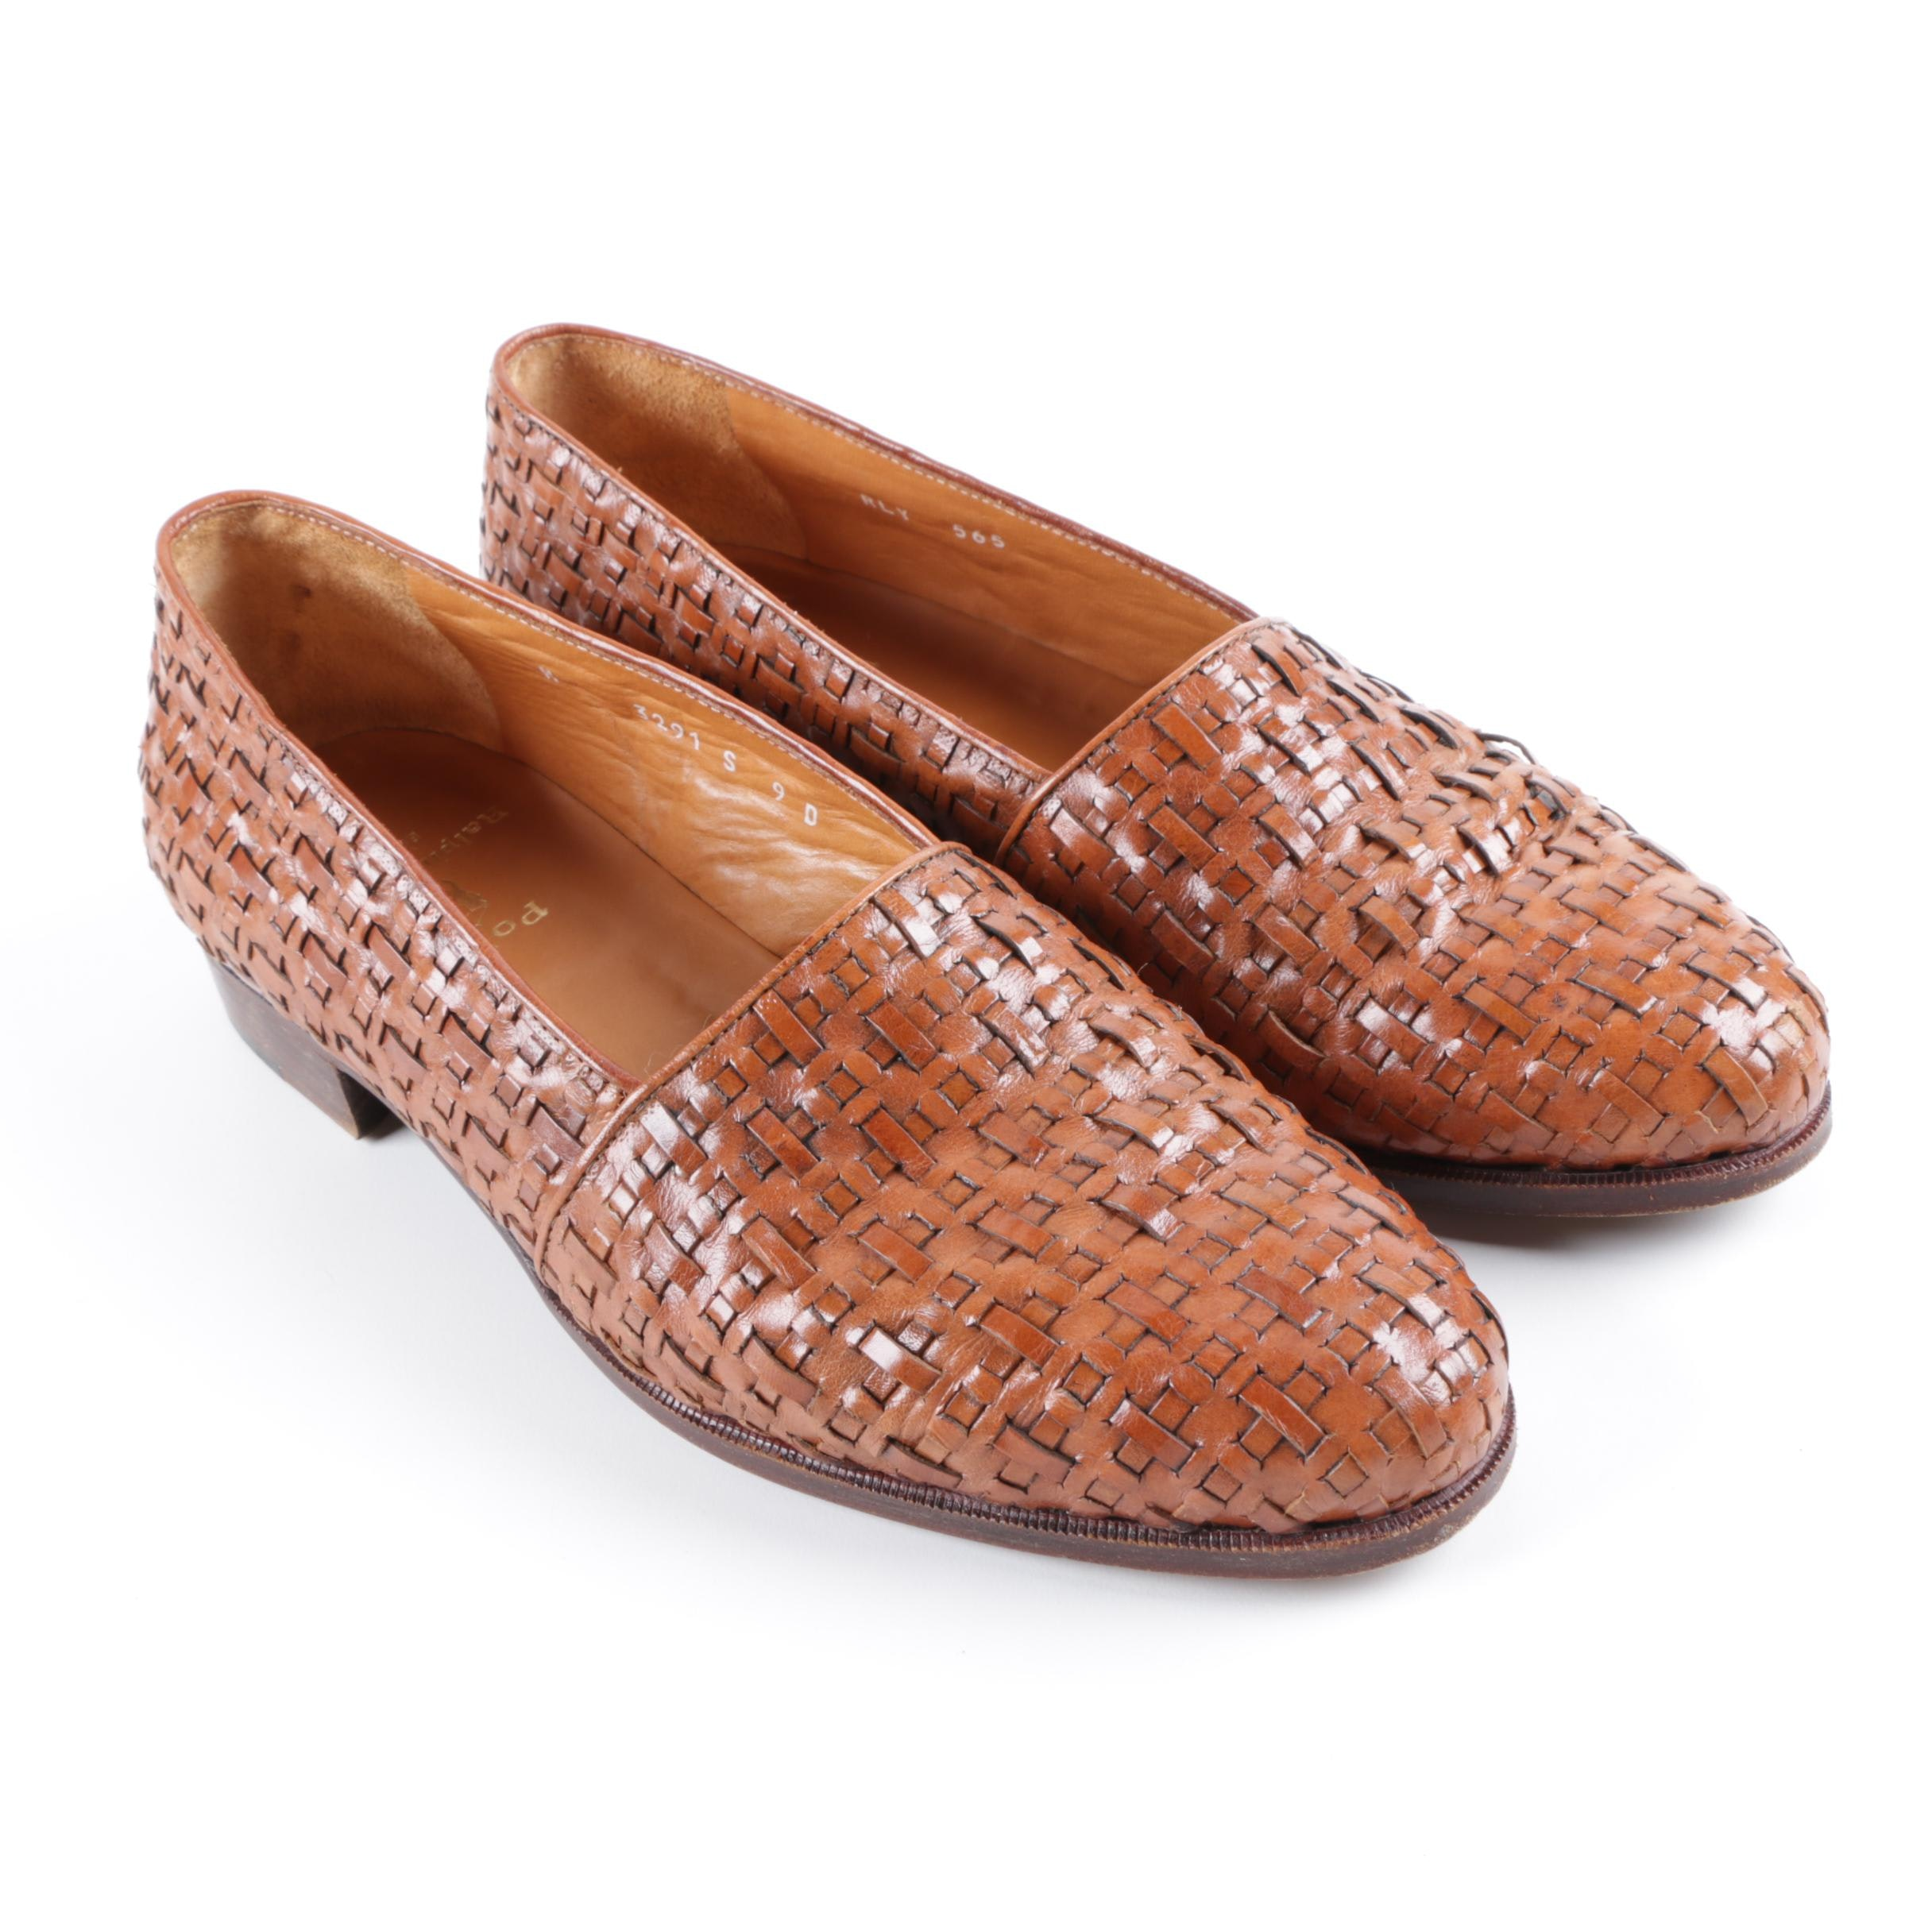 Men's Polo Ralph Lauren Brown Woven Leather Loafers